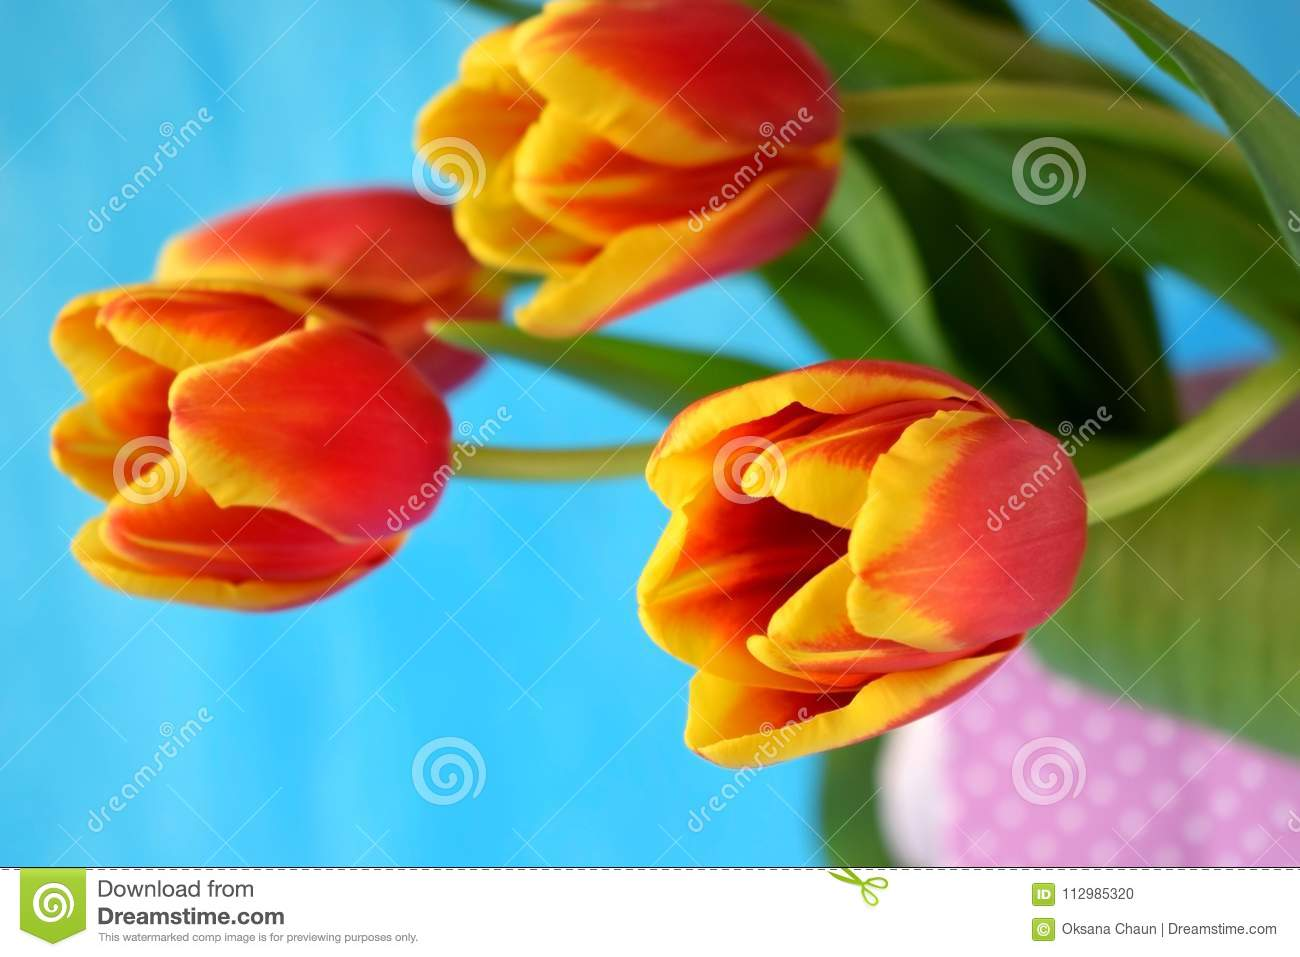 Red tulips in a present bag